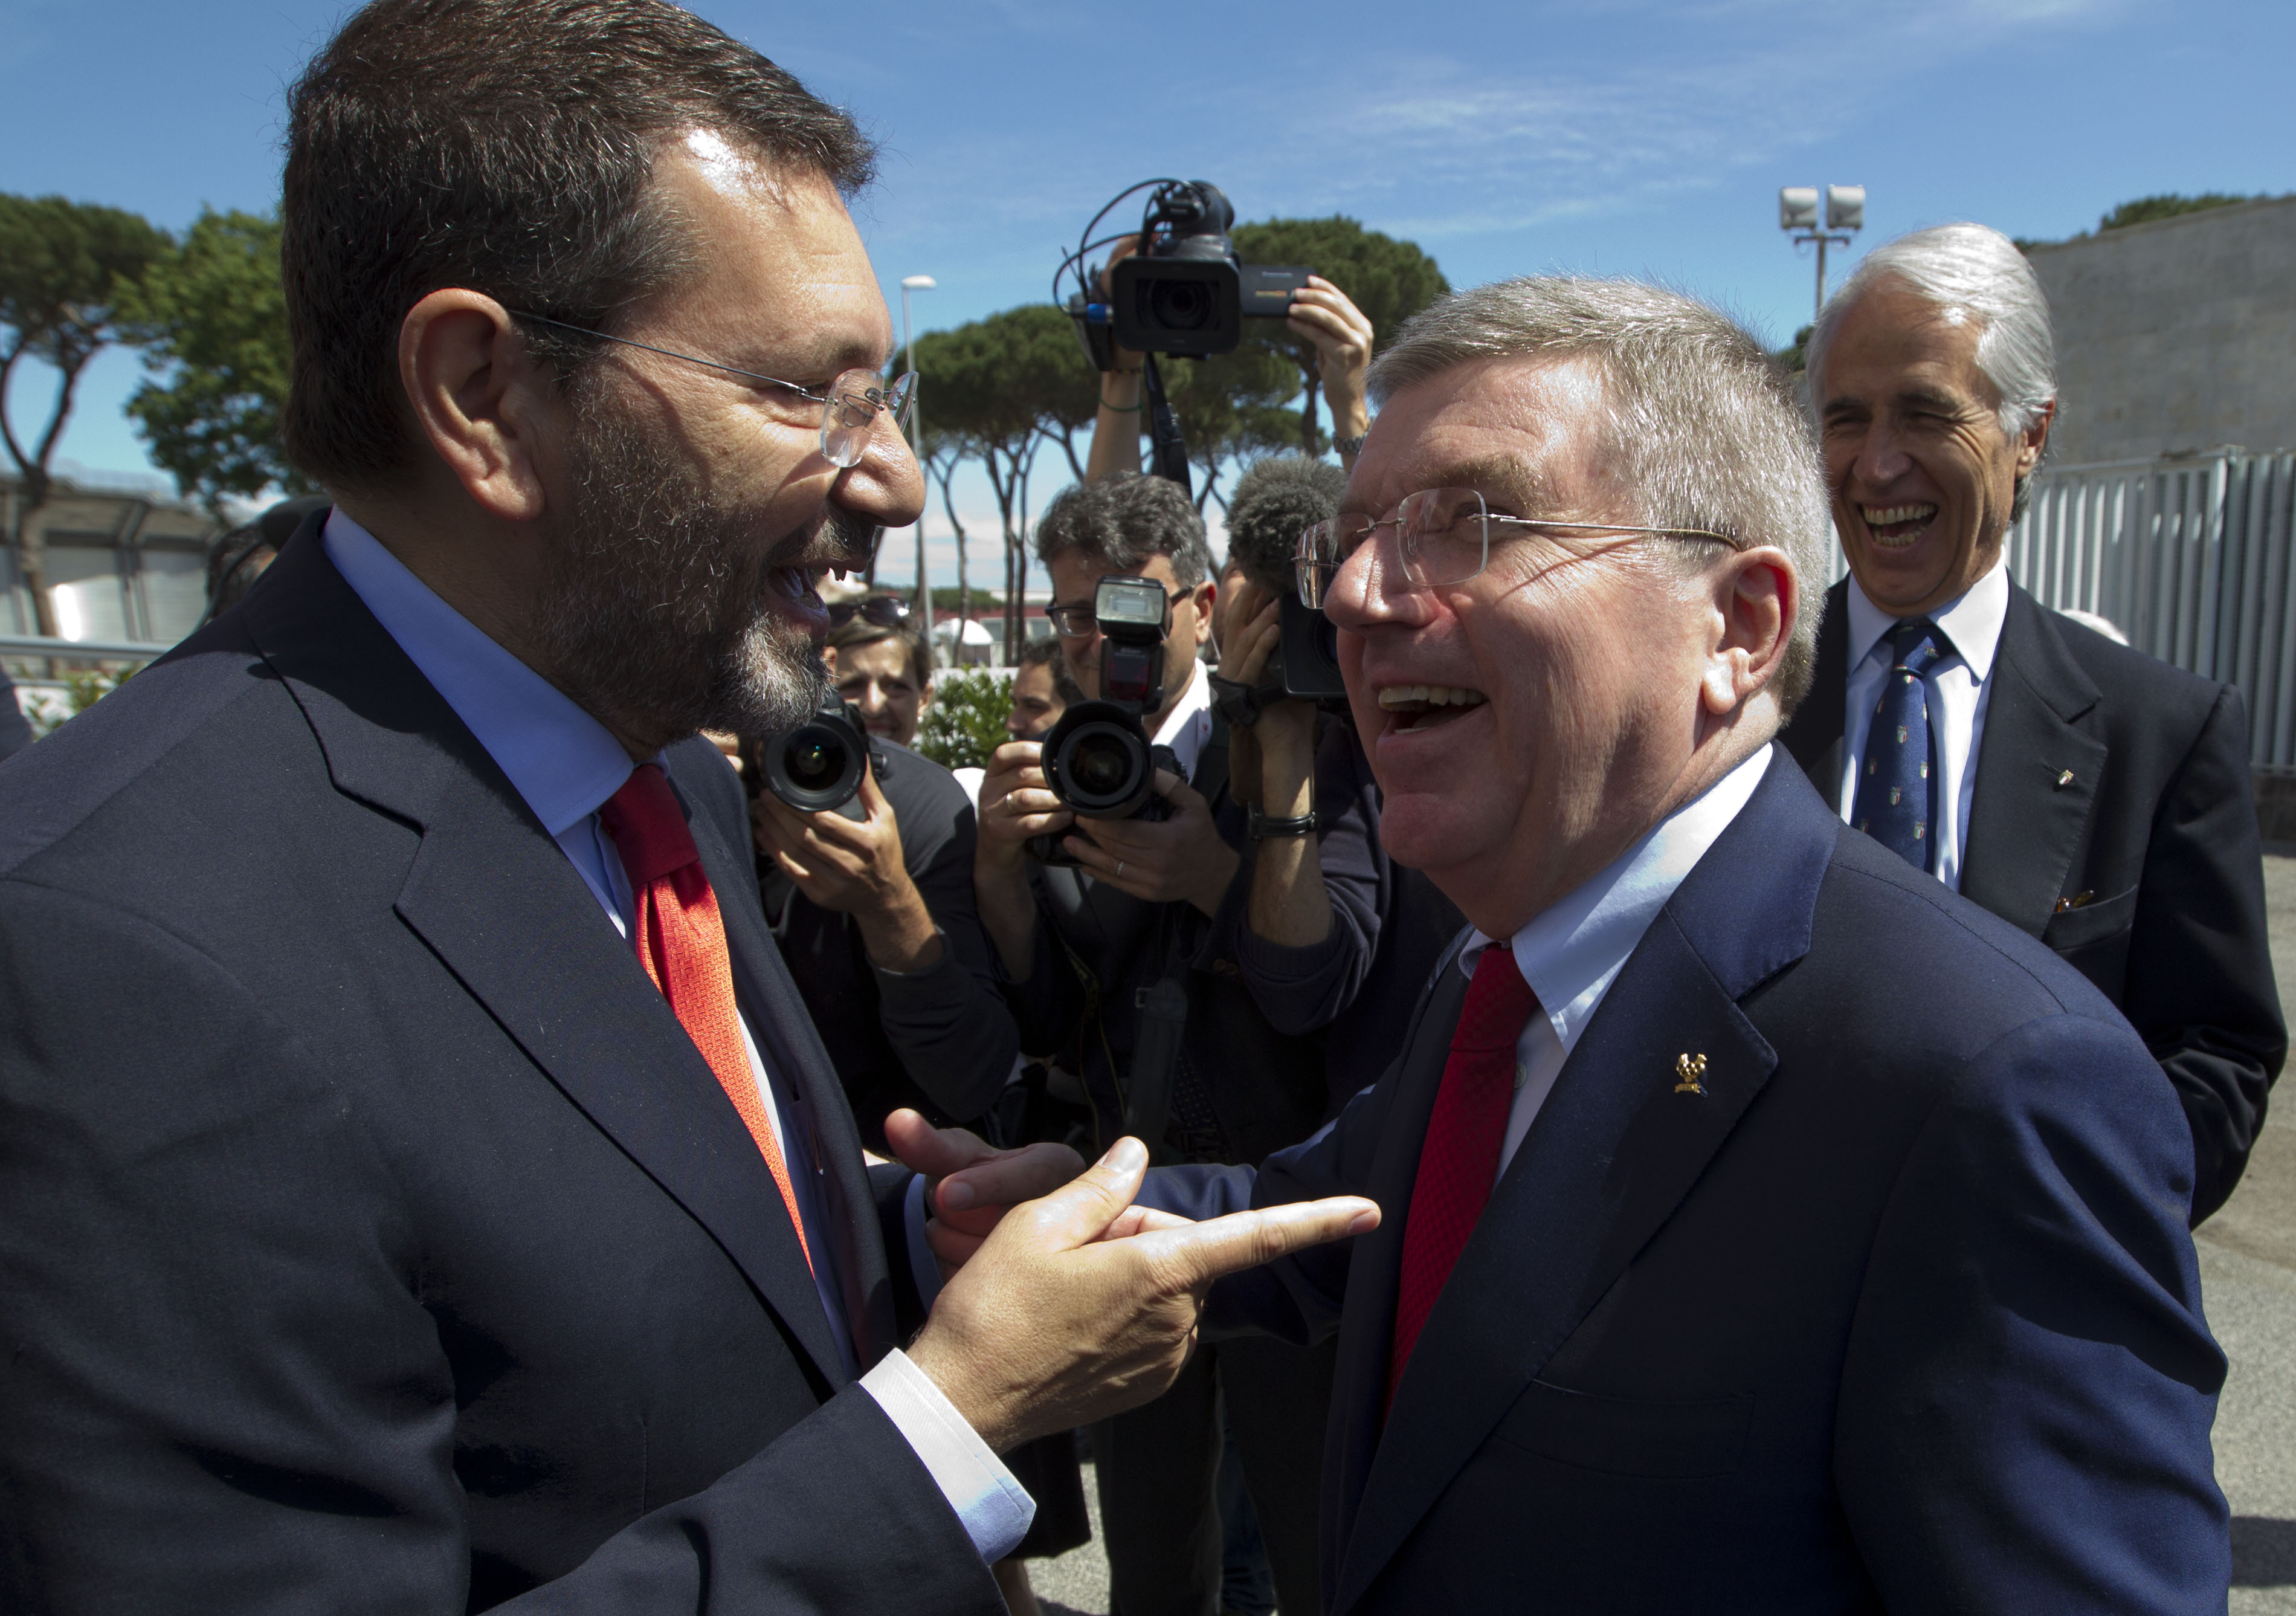 FILE - In this Friday, May 22, 2015 file photo, International Olympic Committee, IOC, president Thomas Bach, right, is greeted by Rome's mayor Ignazio Marino as he arrives to visit the Rome 2024 Olympic bid headquarters, in Rome. Rome's city council Thurs